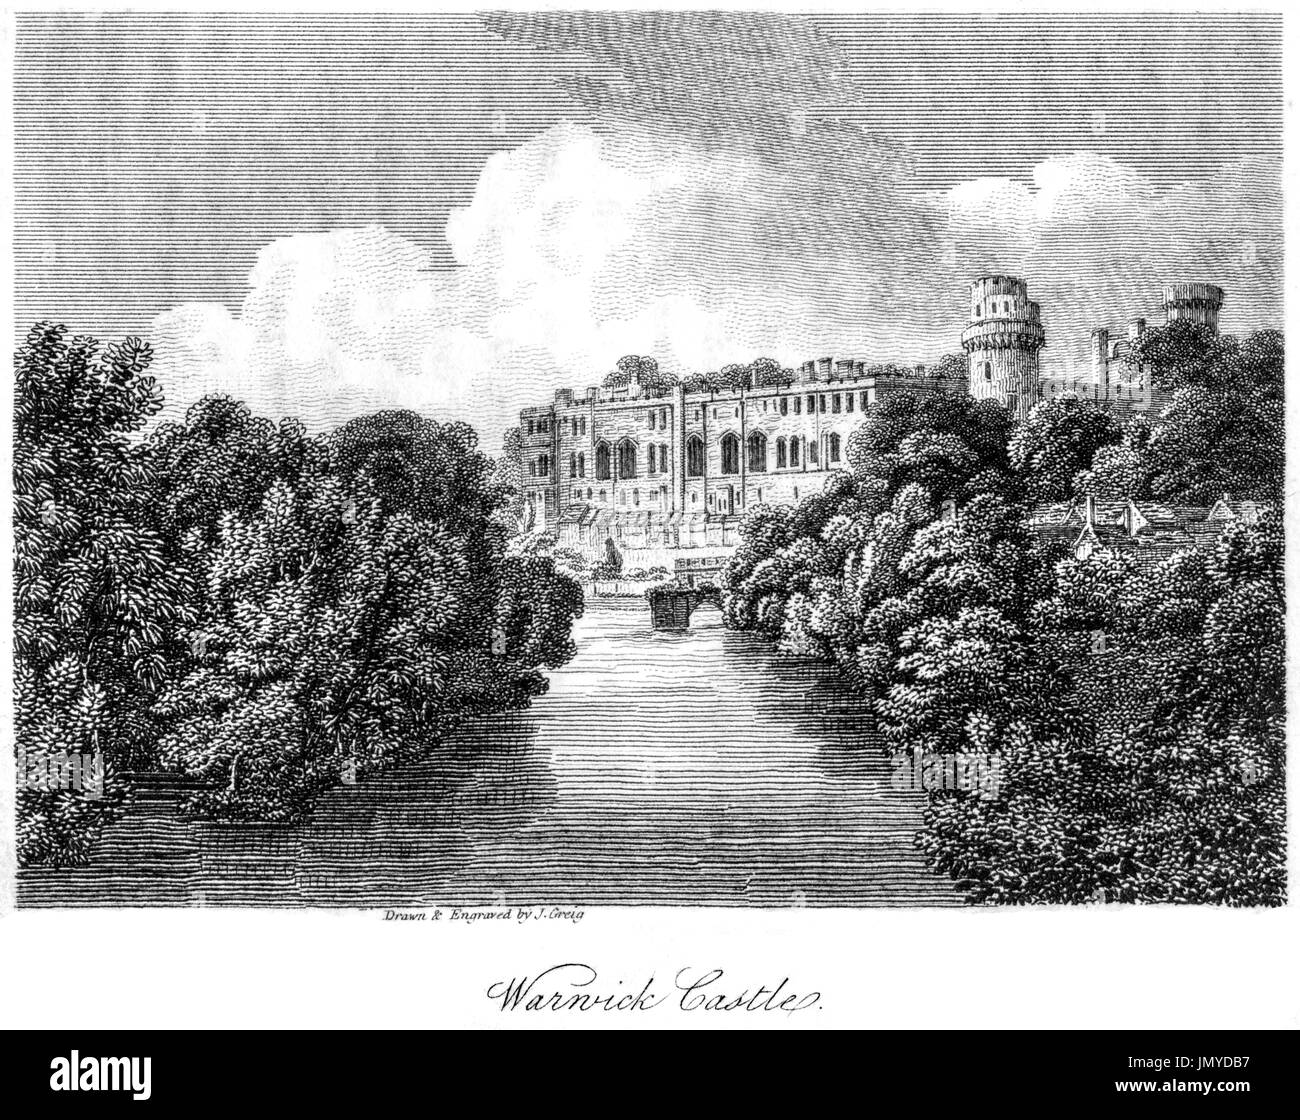 An engraving of Warwick Castle scanned at high resolution from a book printed in 1808.  Believed copyright free. - Stock Image